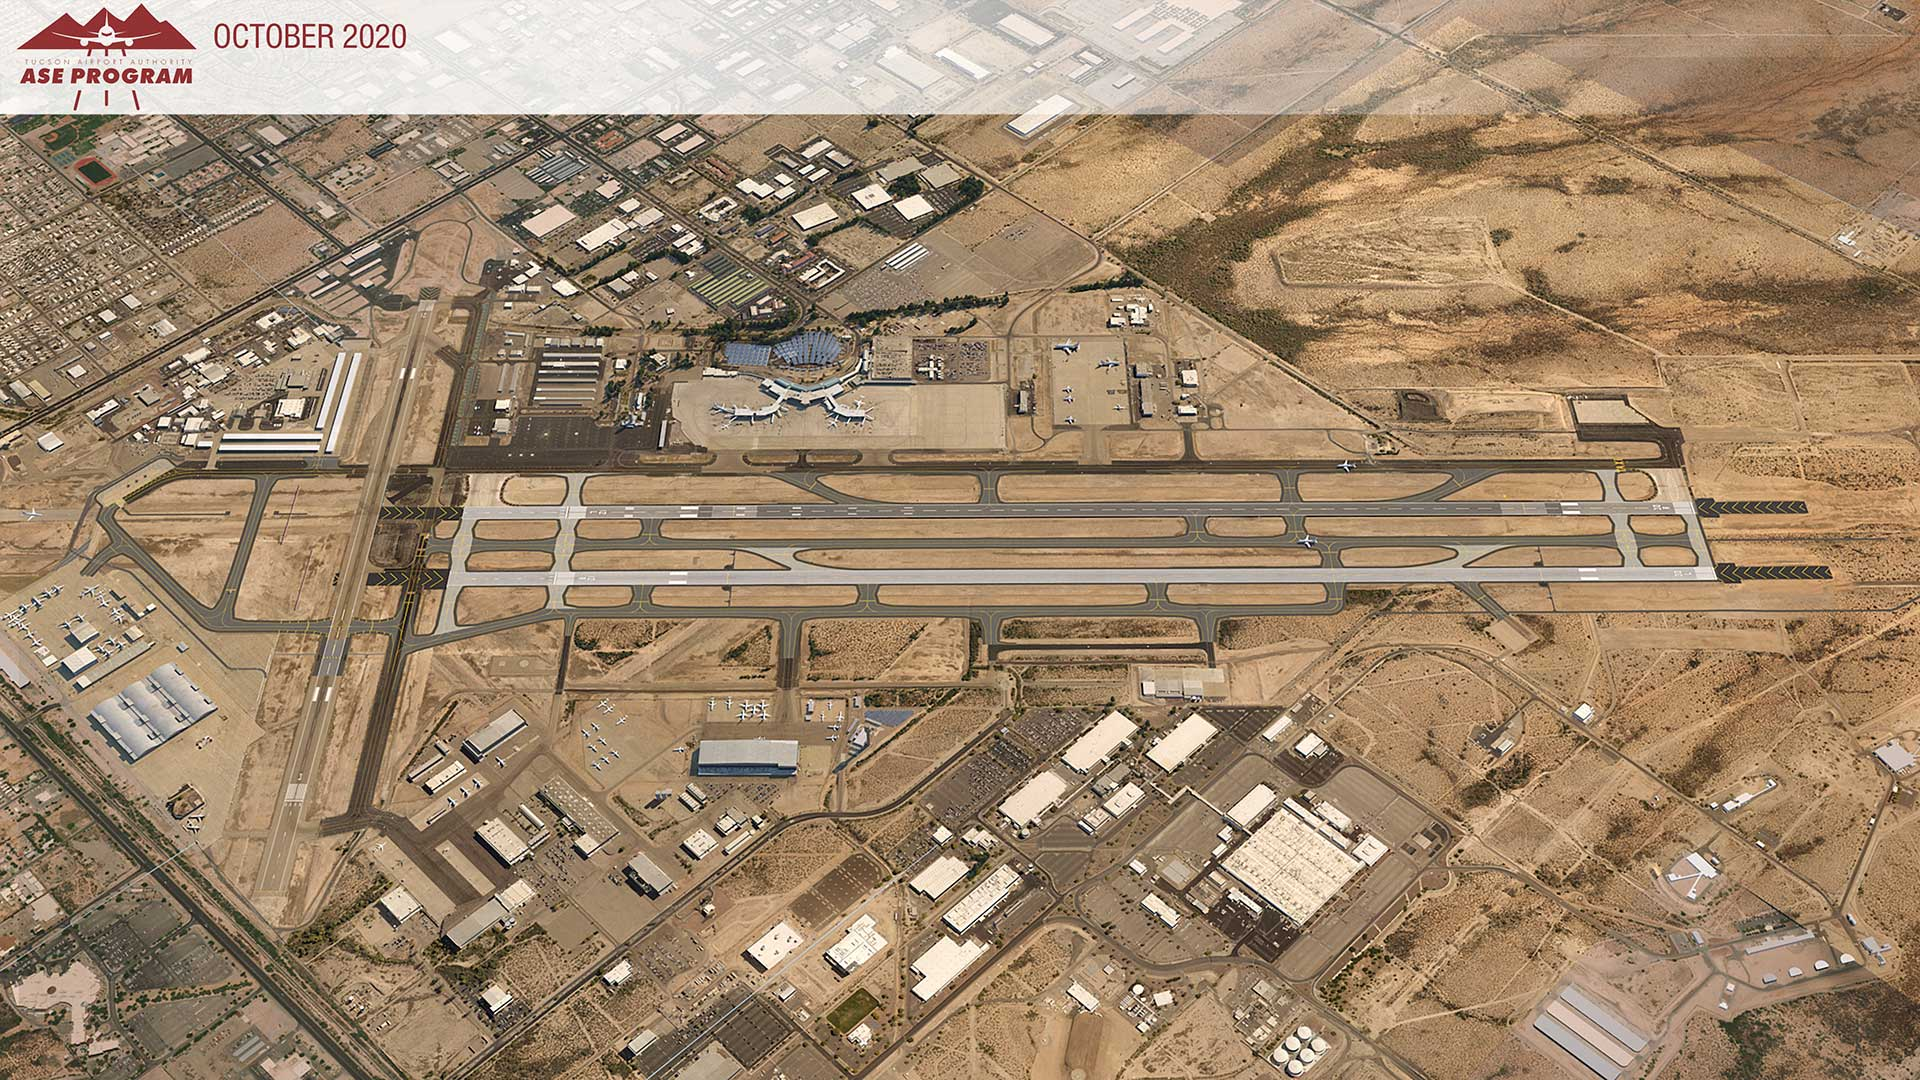 The Tucson Airport Authority plans to upgrade an existing runway to a 2-mile-long commercial runway.